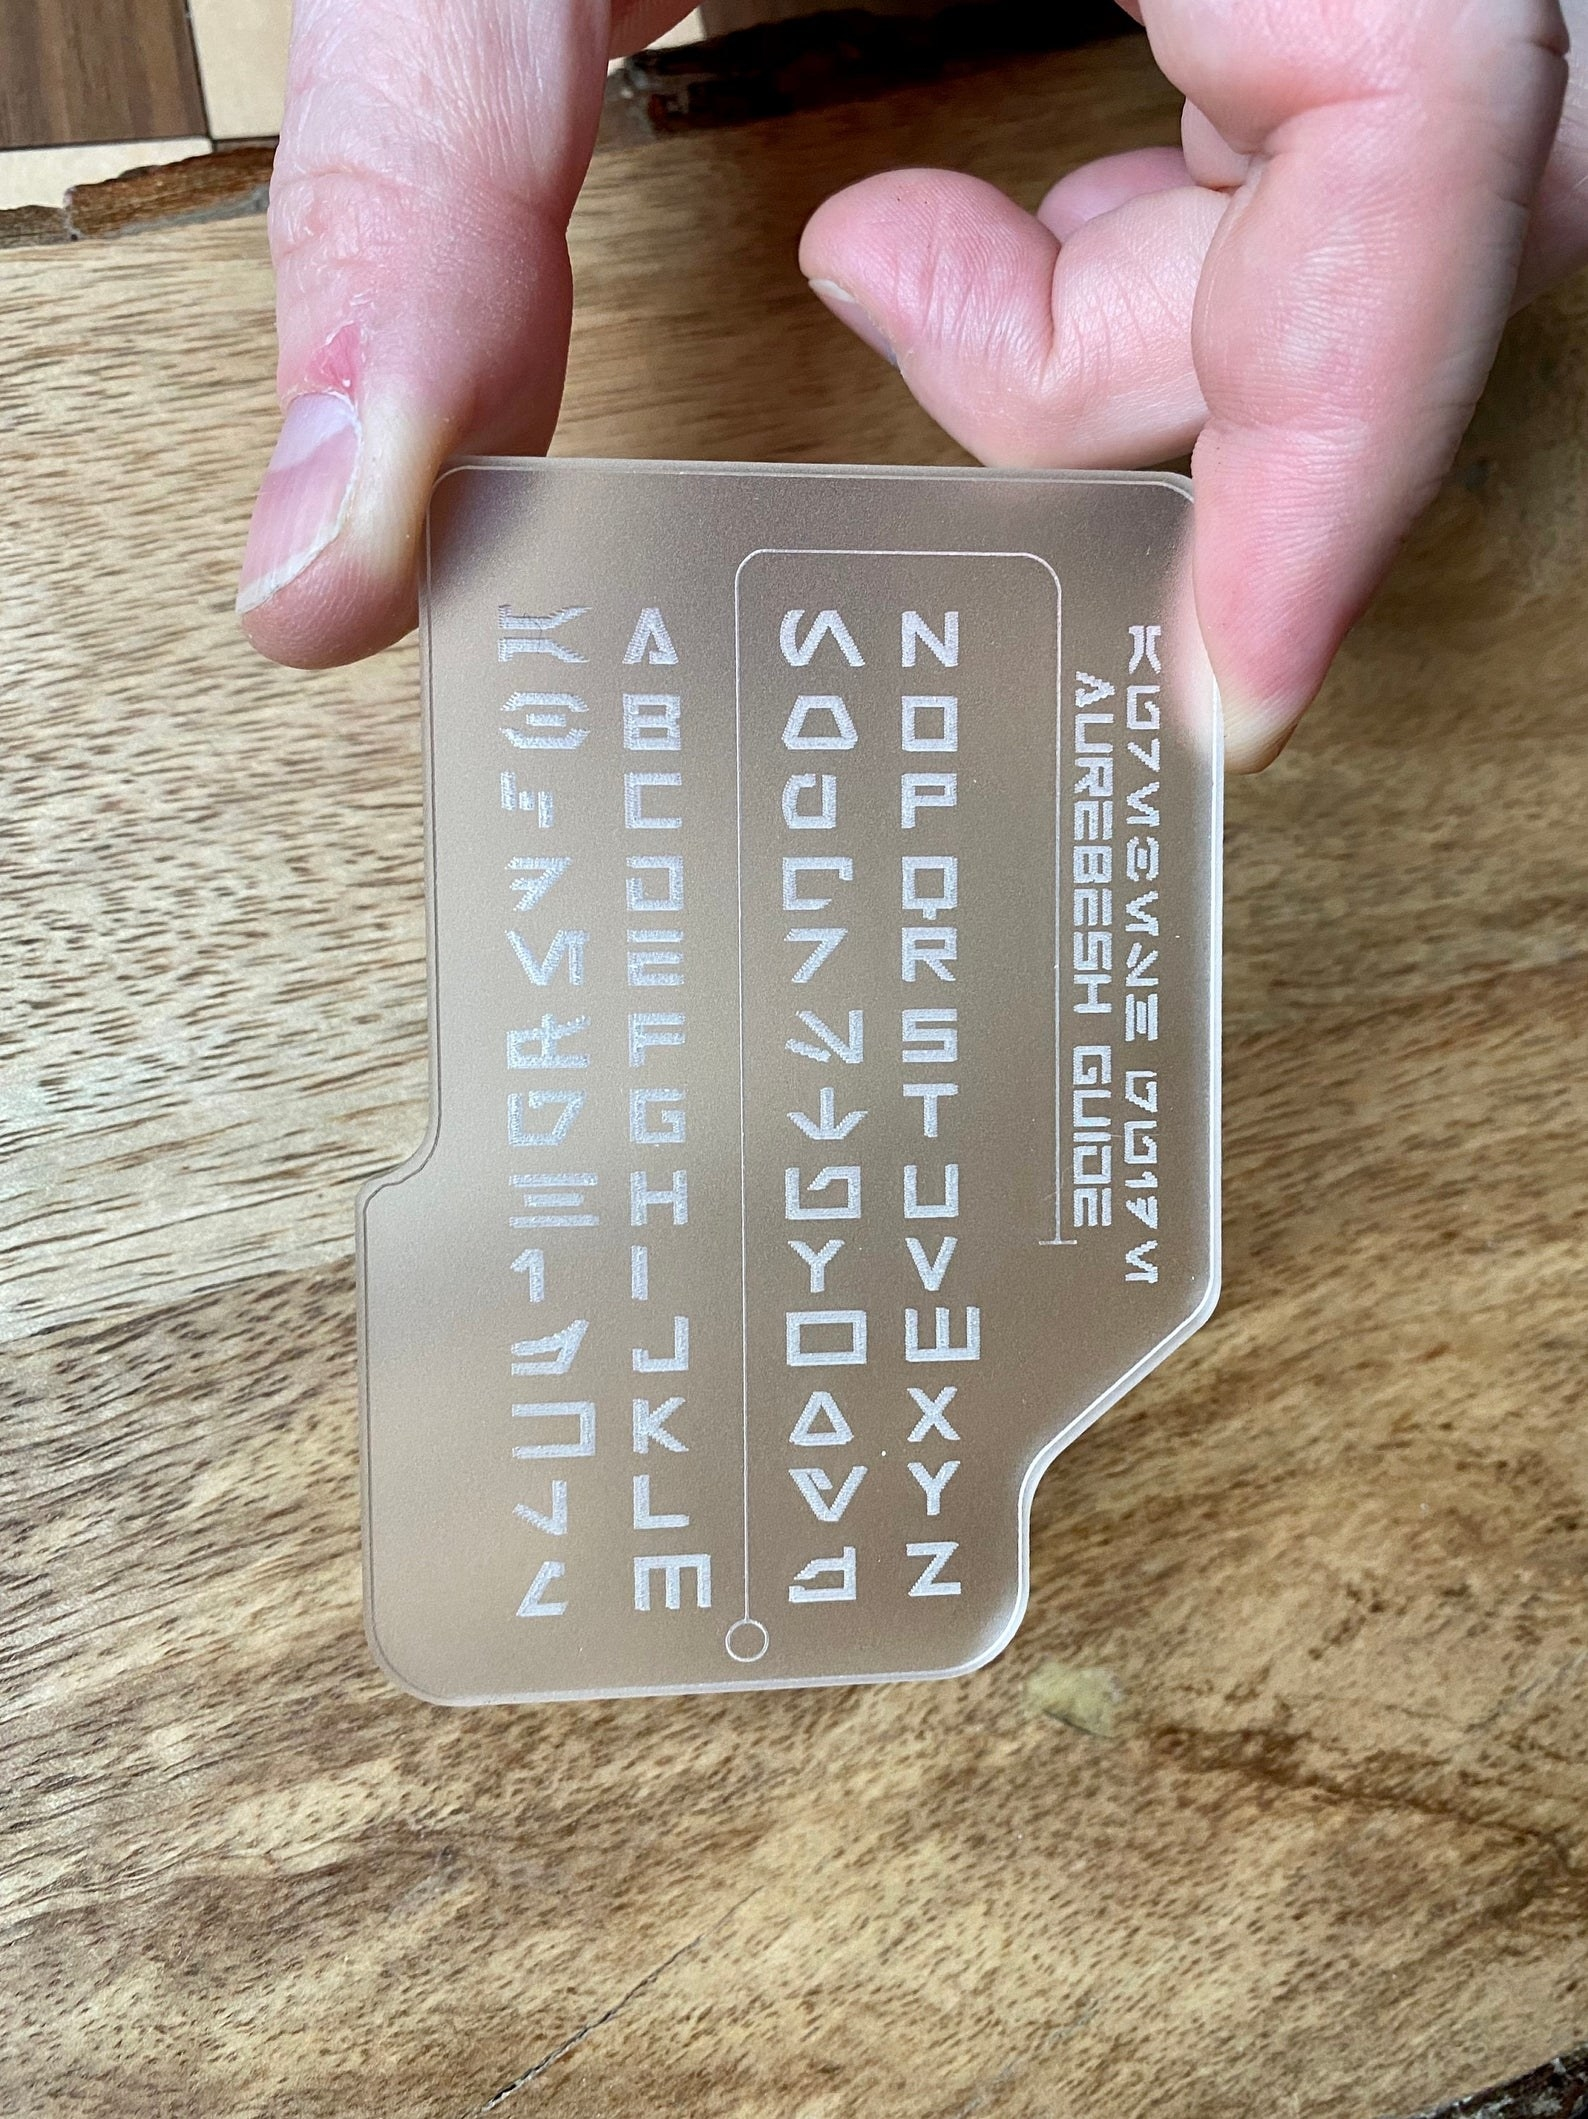 the clear pocket translator with etched letters and symbols on it